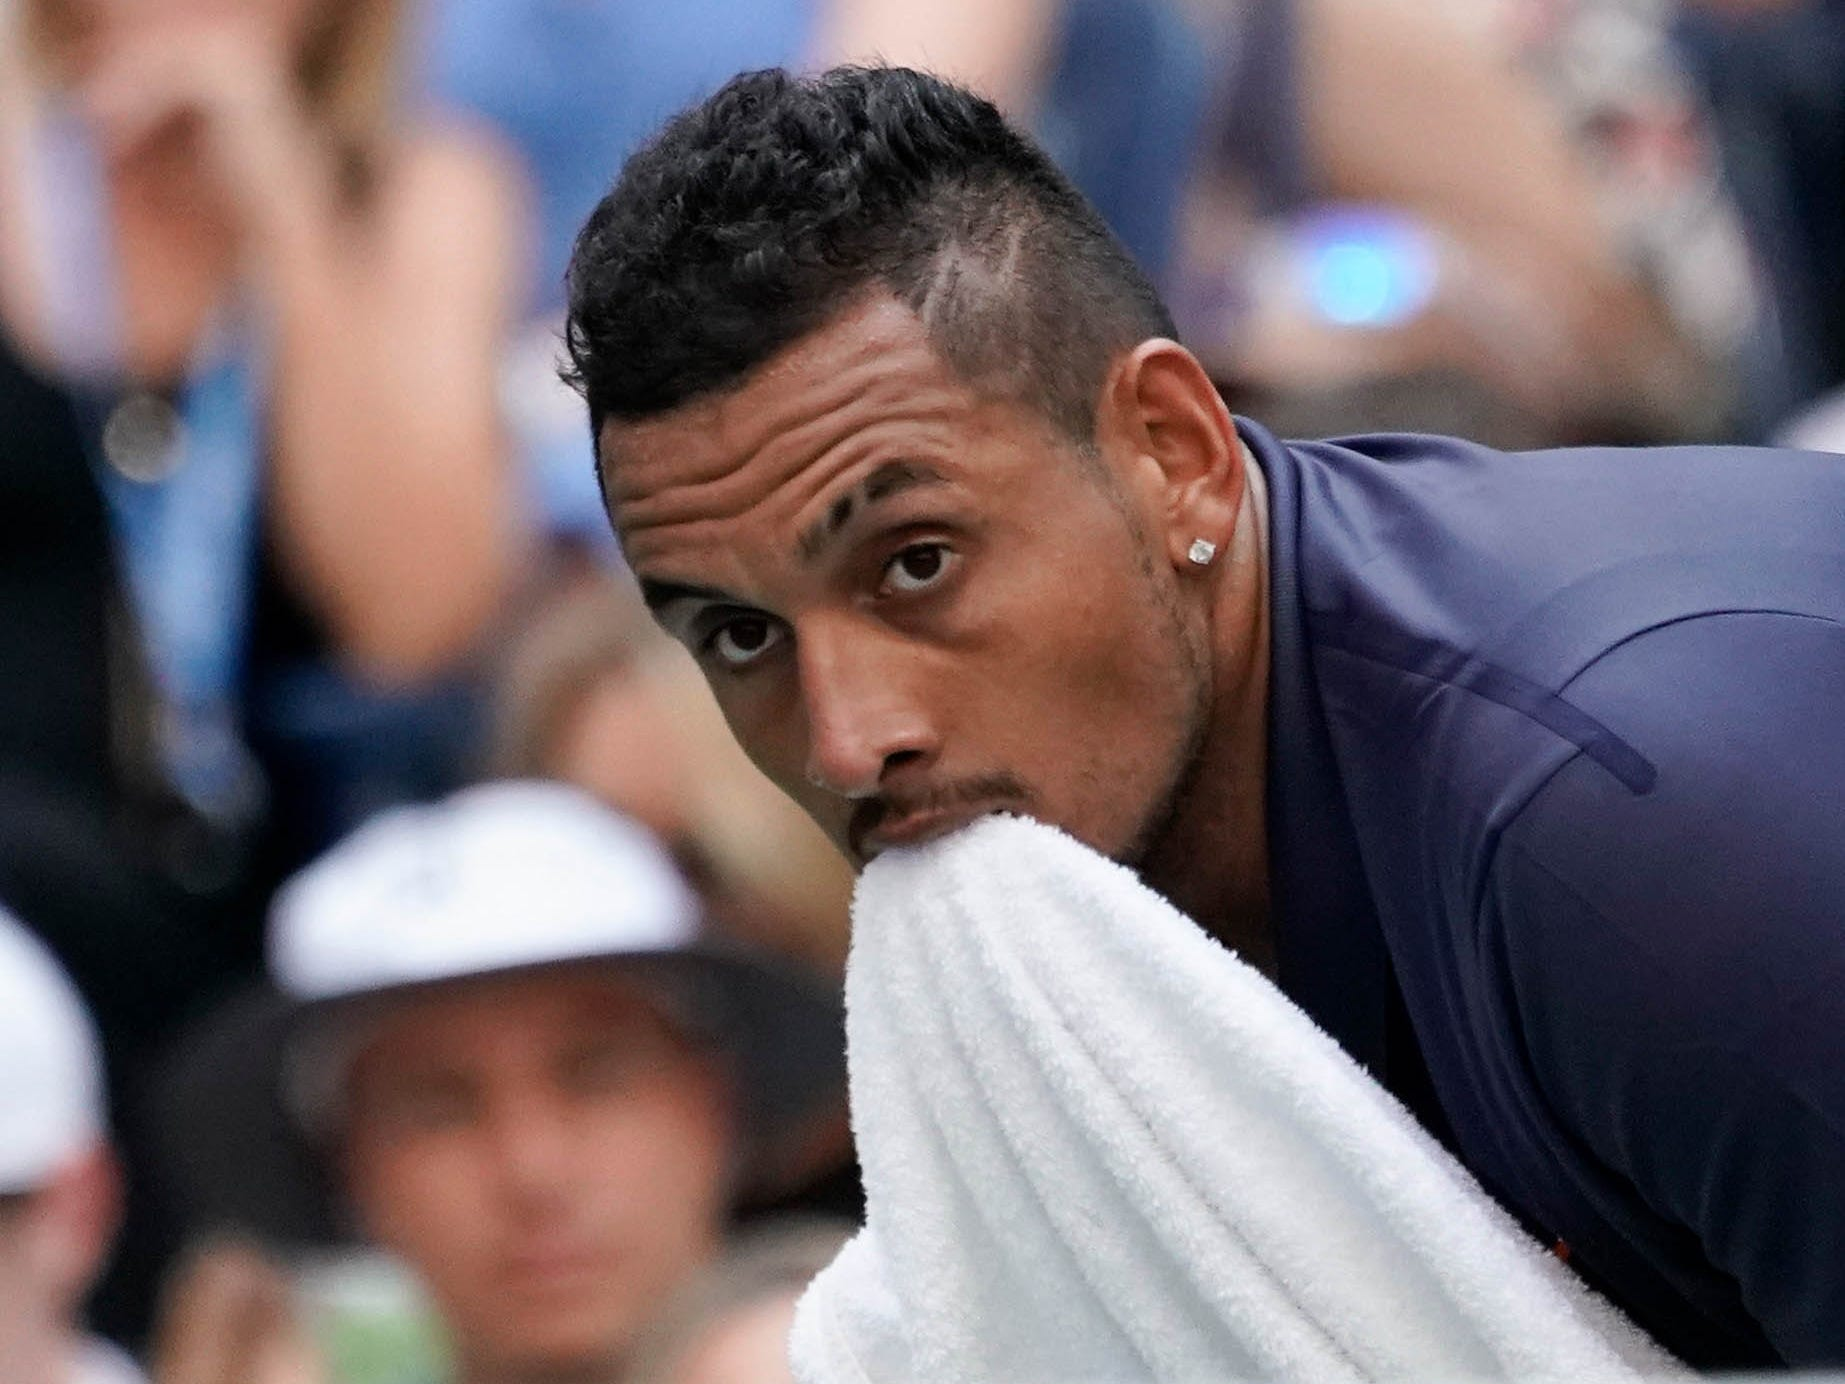 Nick Kyrgios drops a game in the third set against Roger Federer.